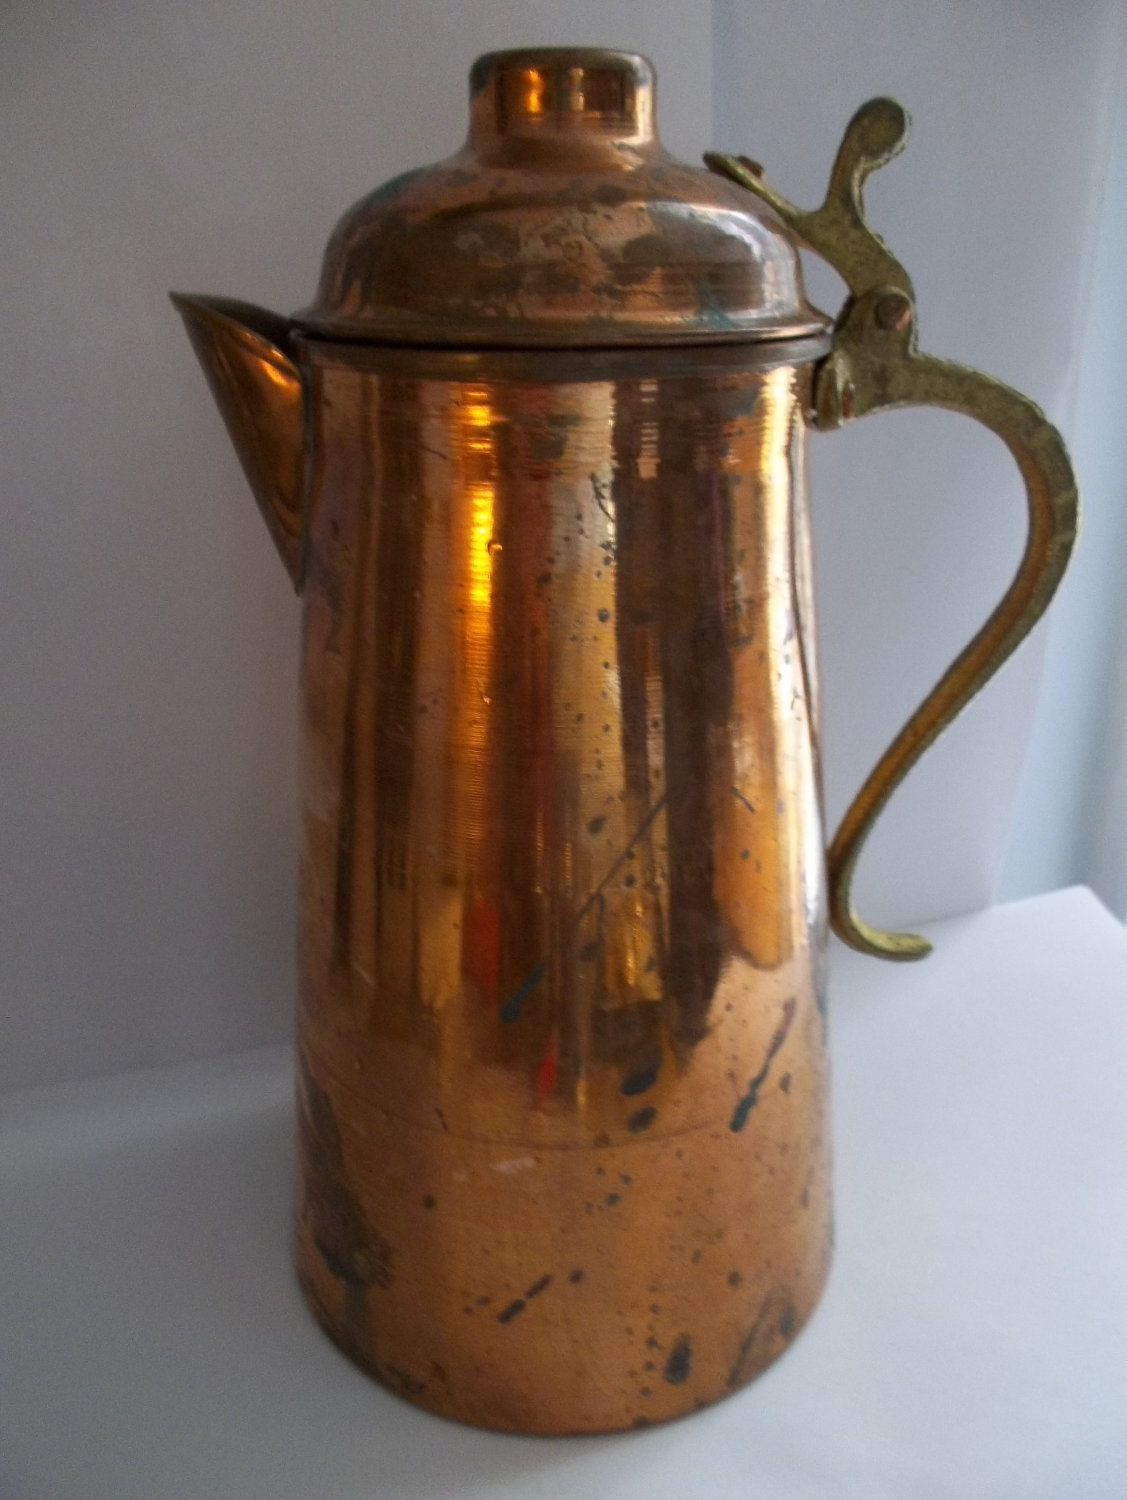 Coffee Pot Planter Vintage Old Copper And Brass Teapot Coffee Pot Vintage